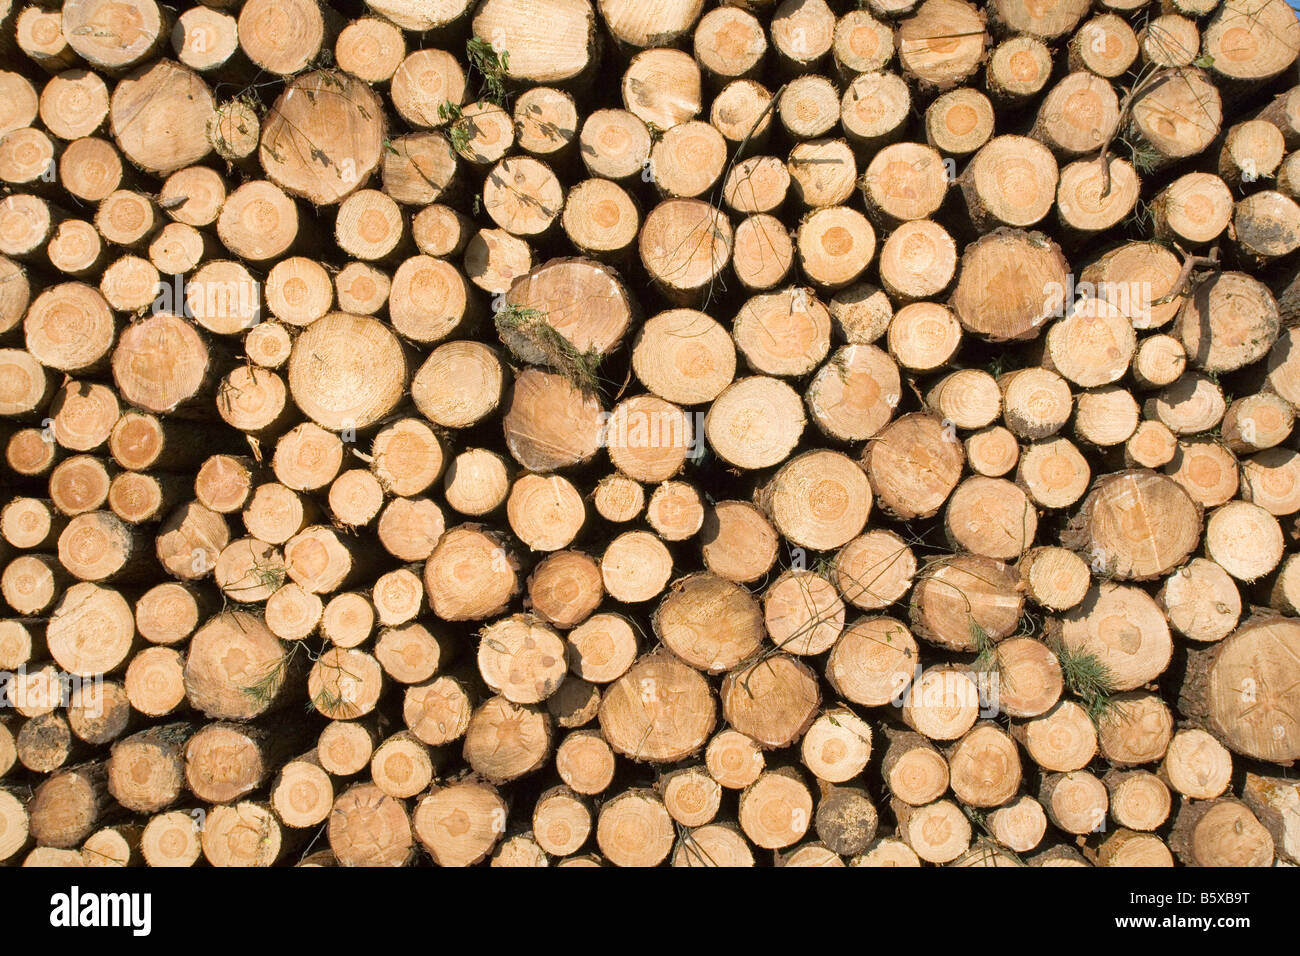 Pile de grumes d'arbres Photo Stock